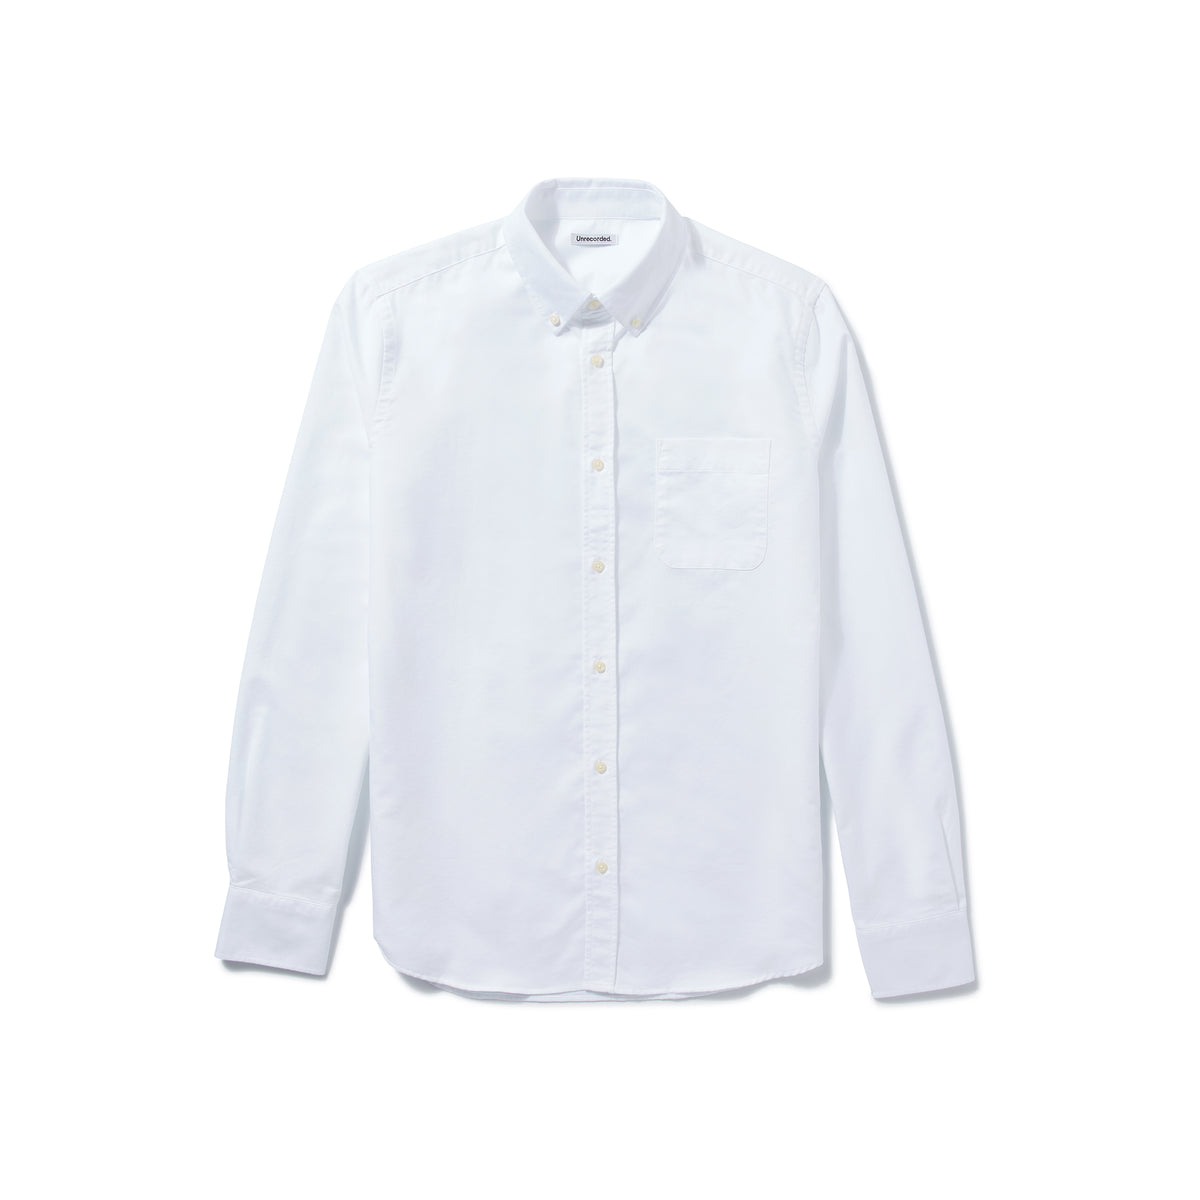 Oxford Shirt White - Unrecorded - Front